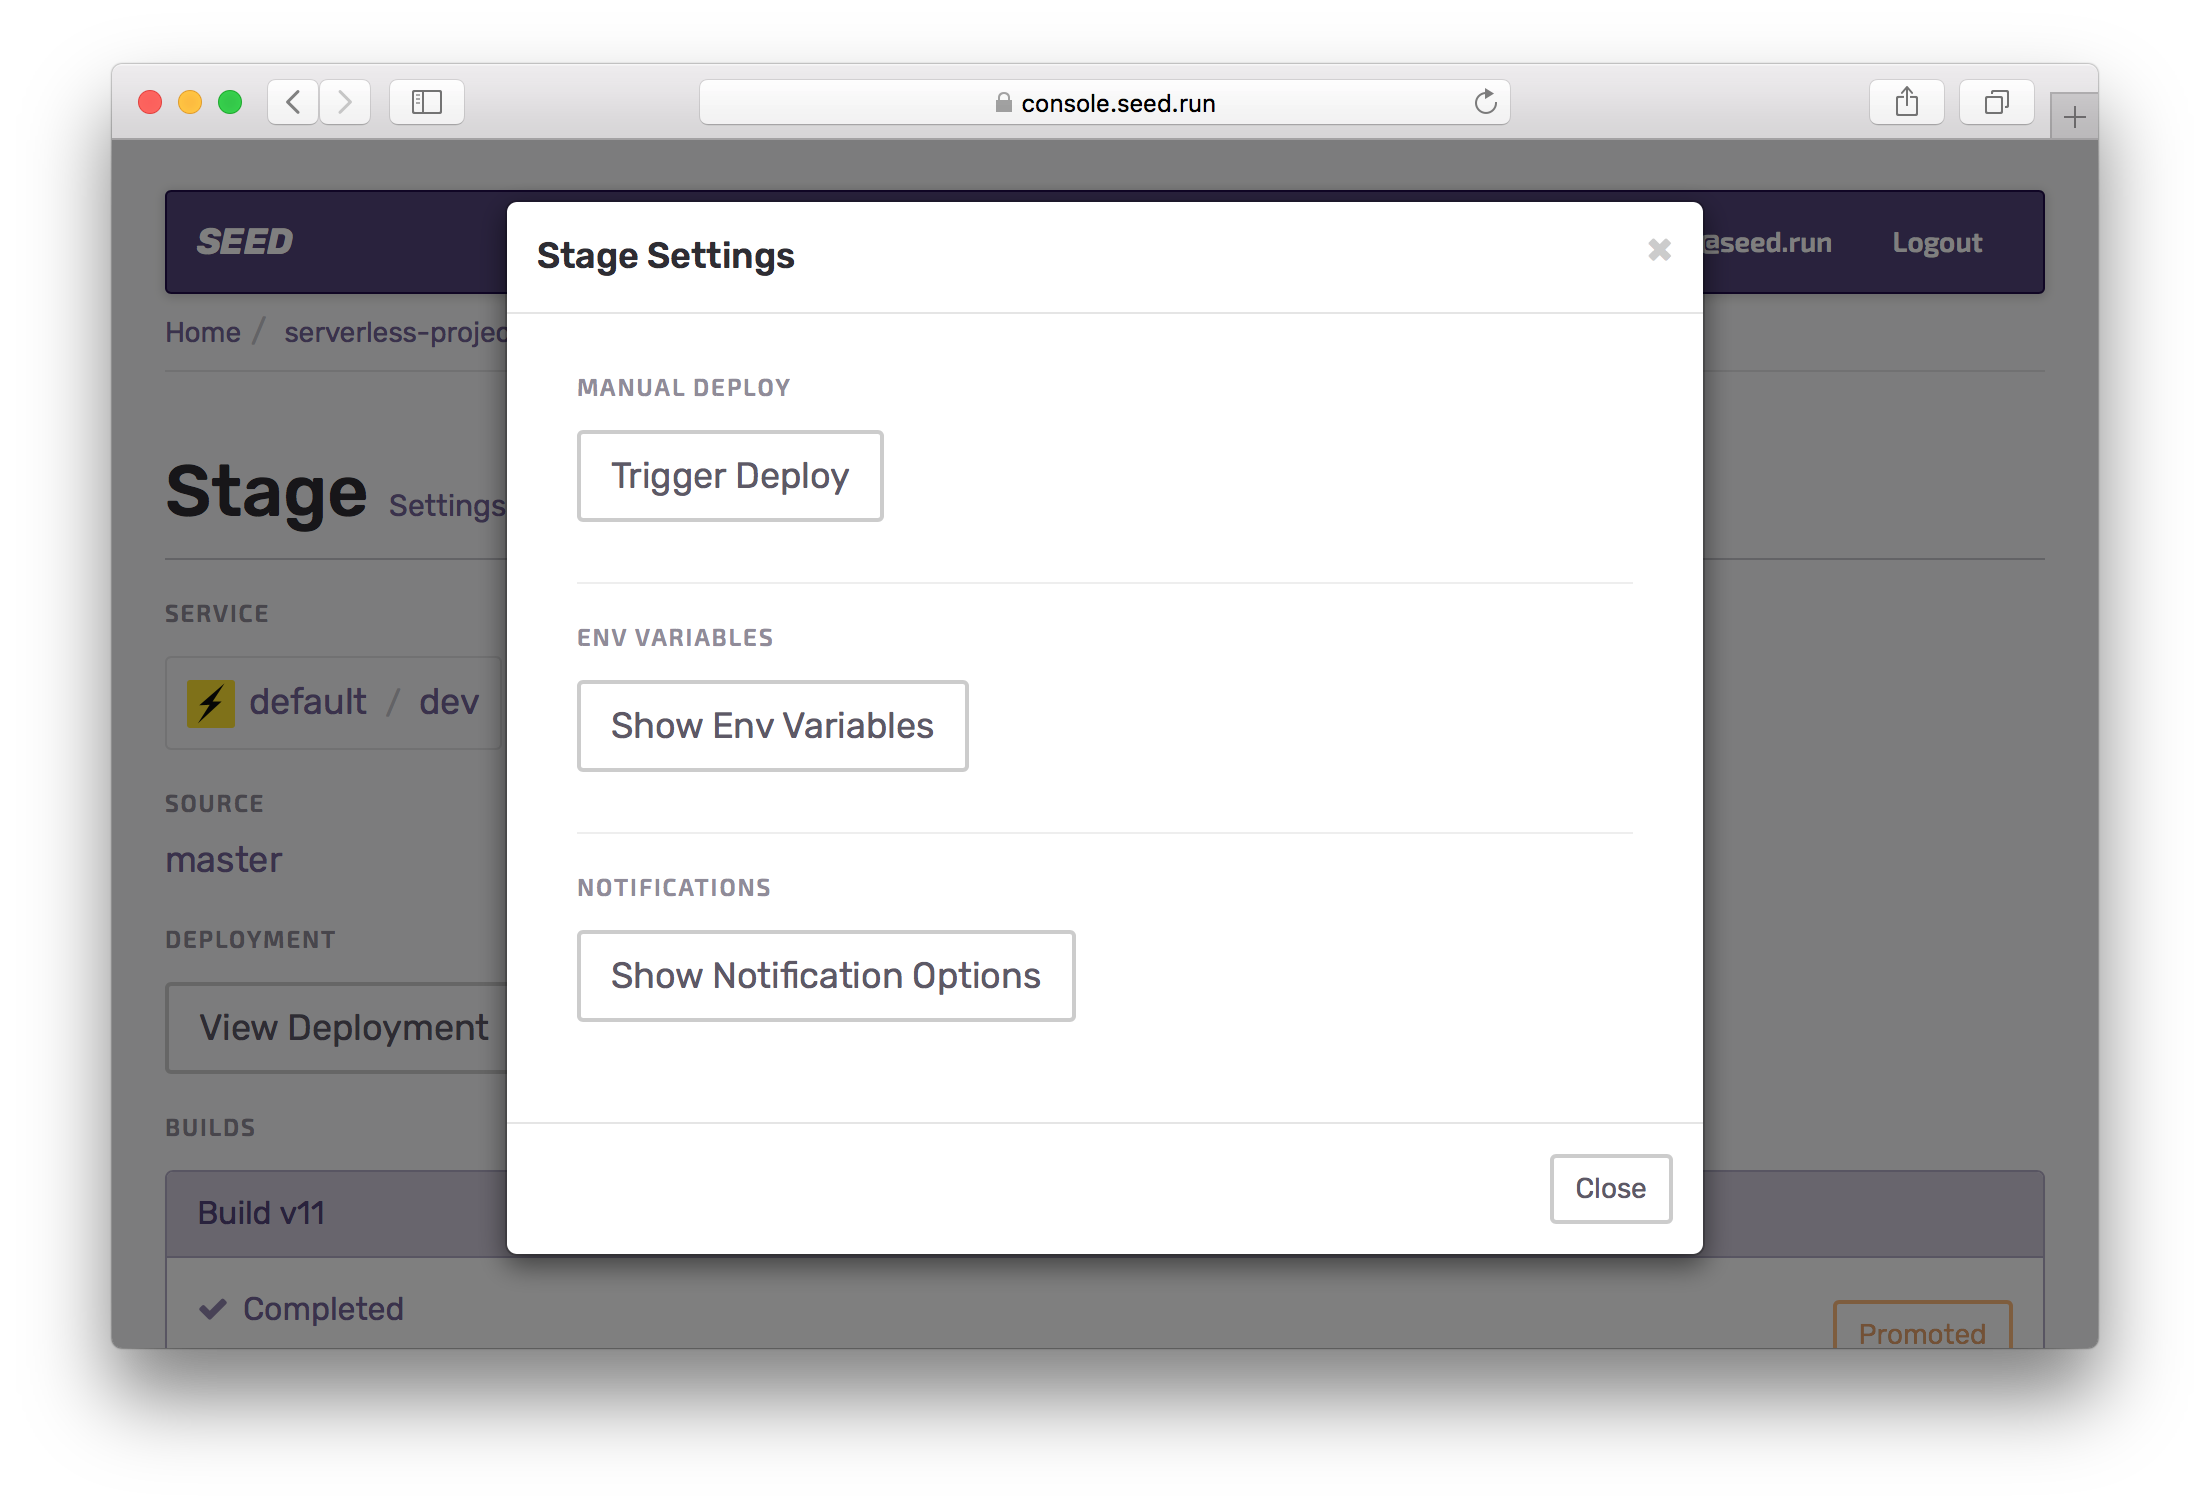 Select service stage settings